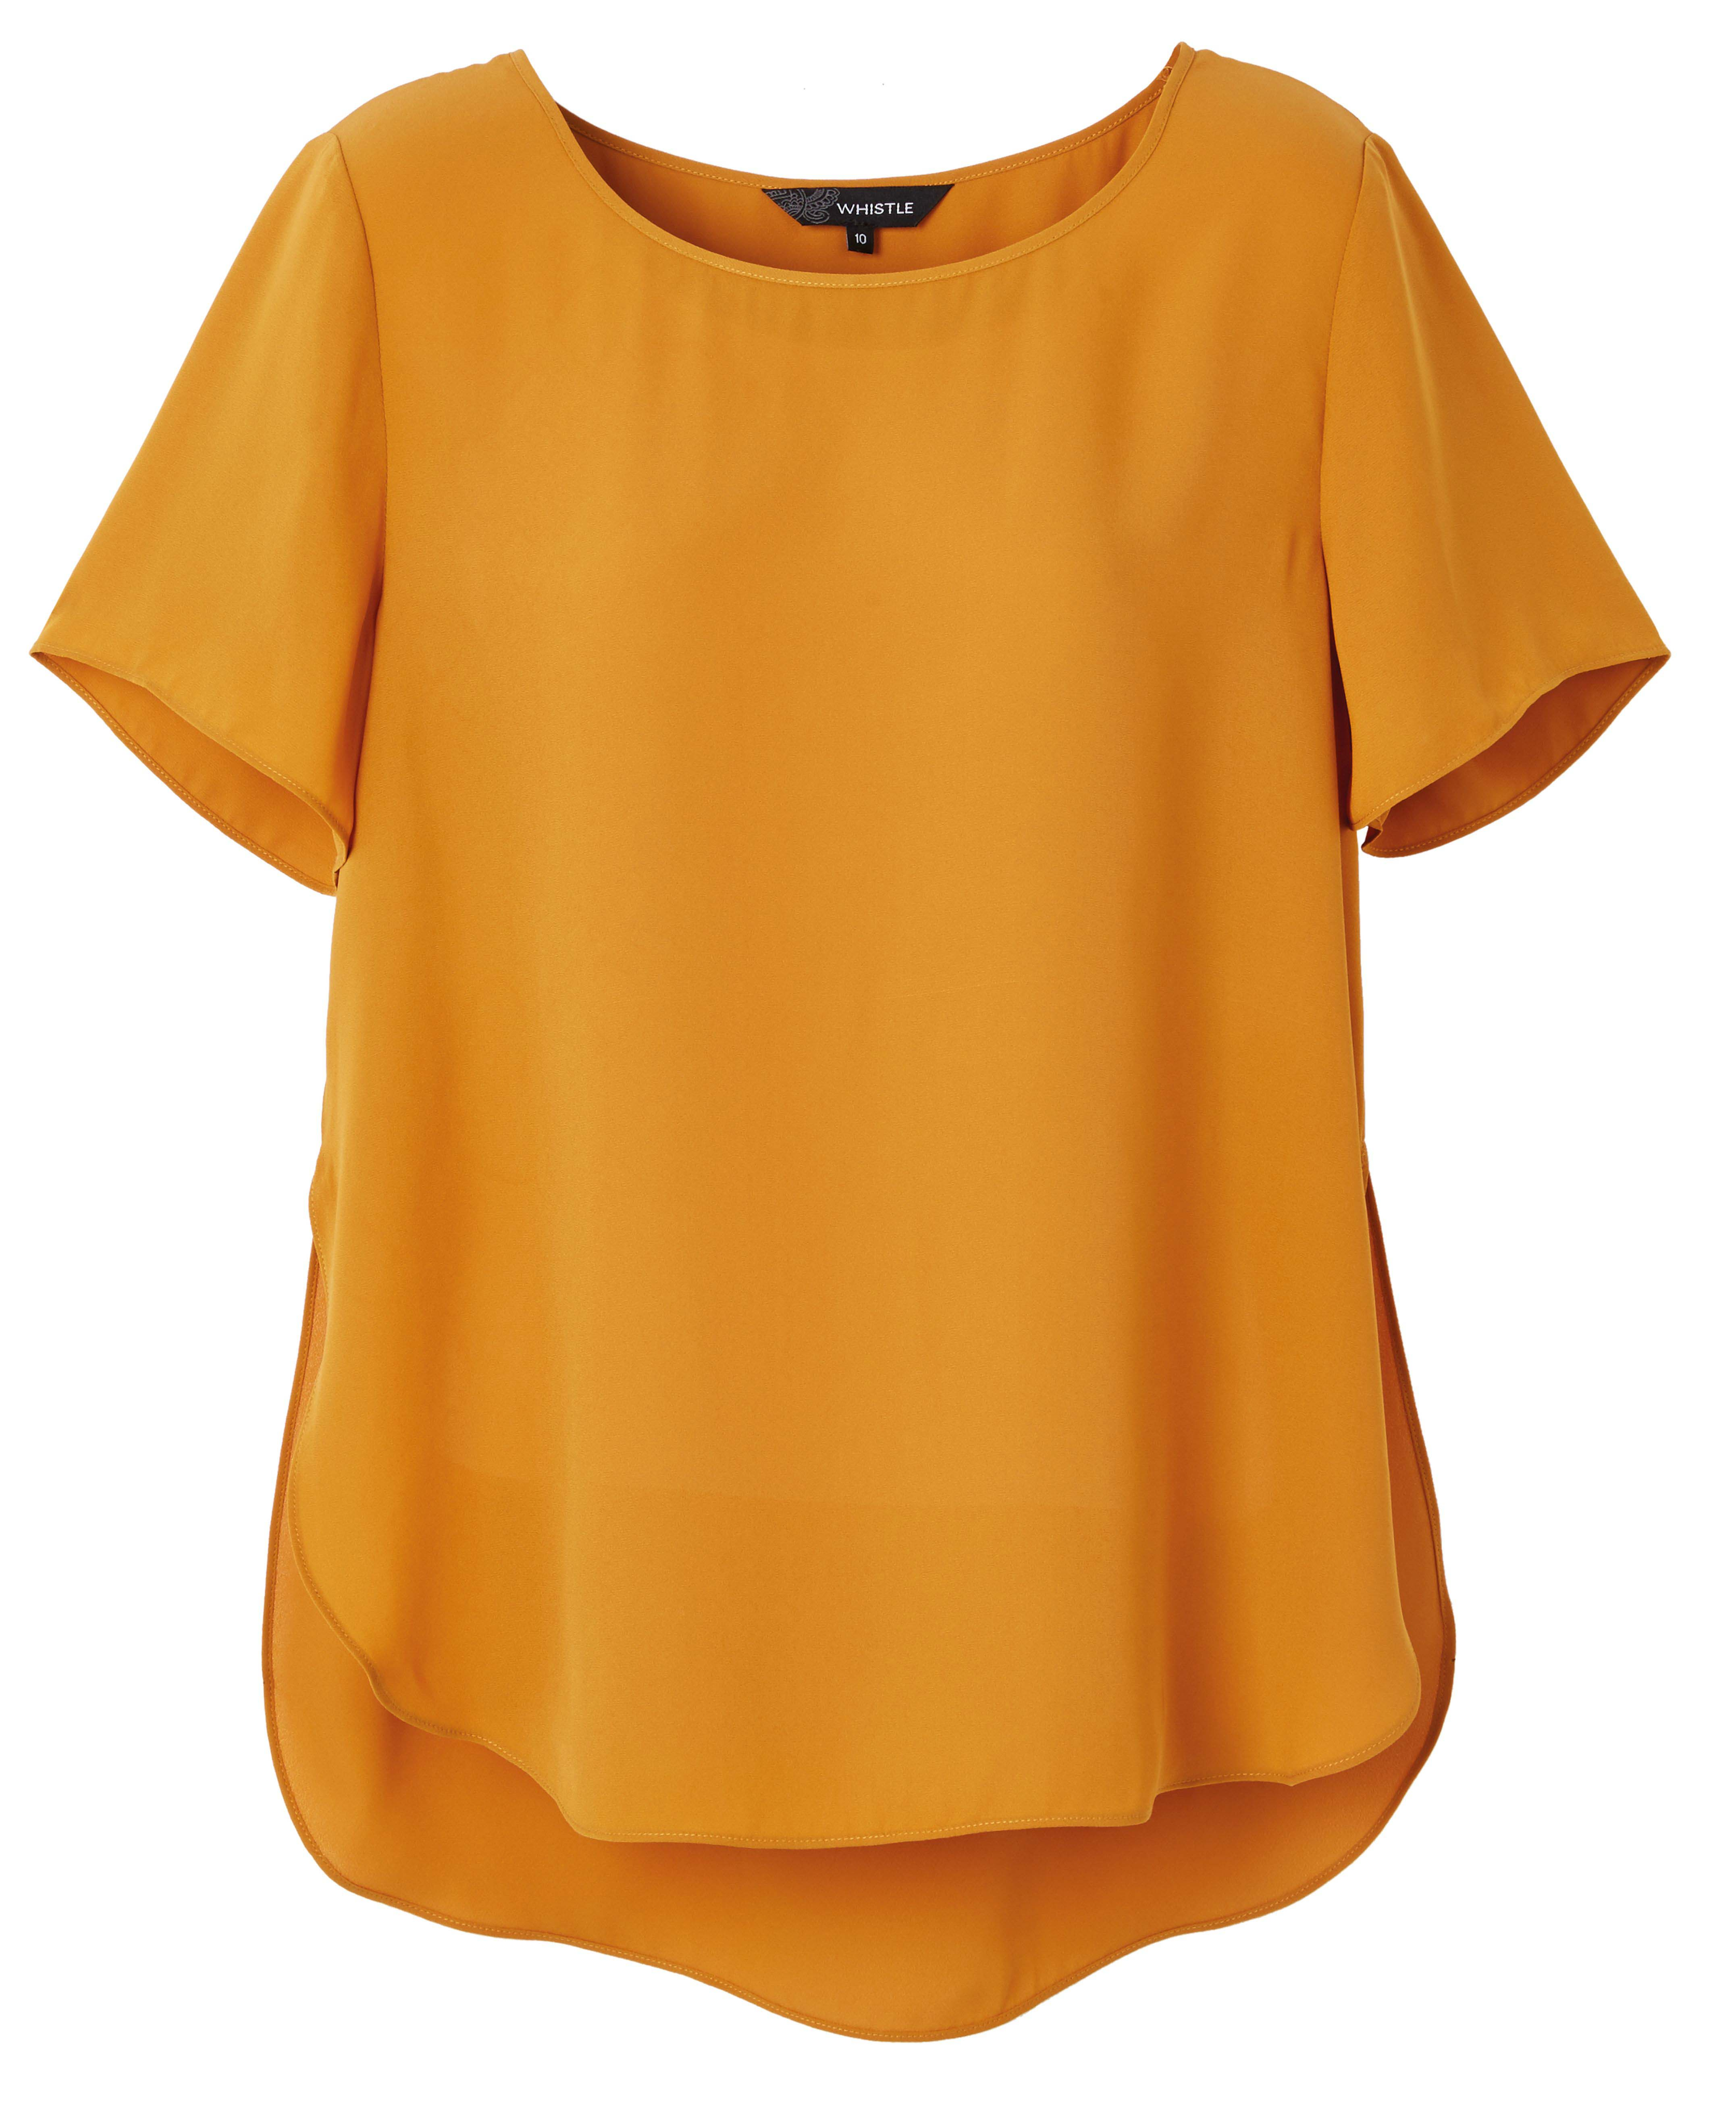 6064556 Whistle The Boxy Top Mustard $49.99 Instore Jan 18.2016